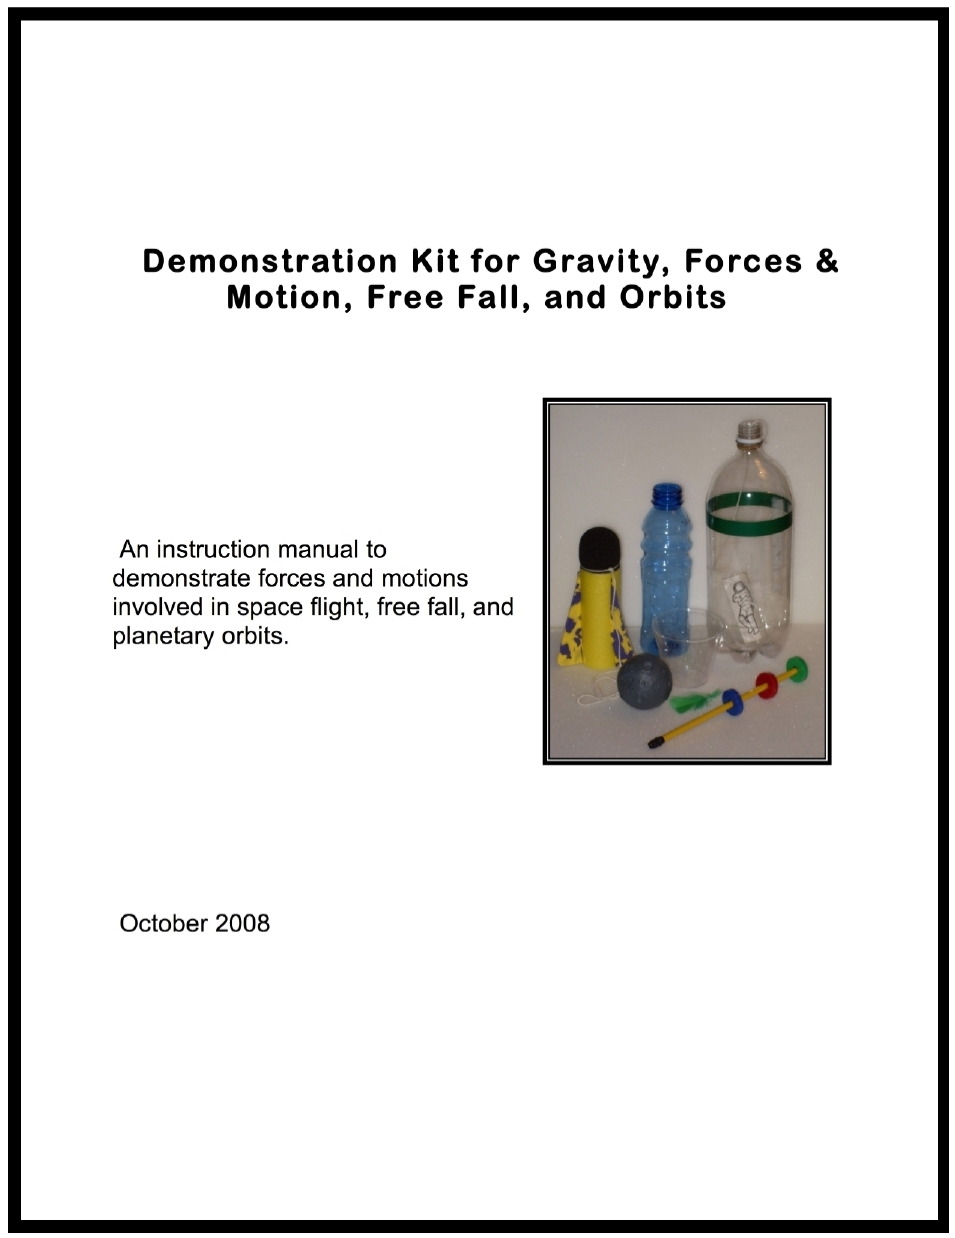 Demonstrating Microgravity Booklet cover